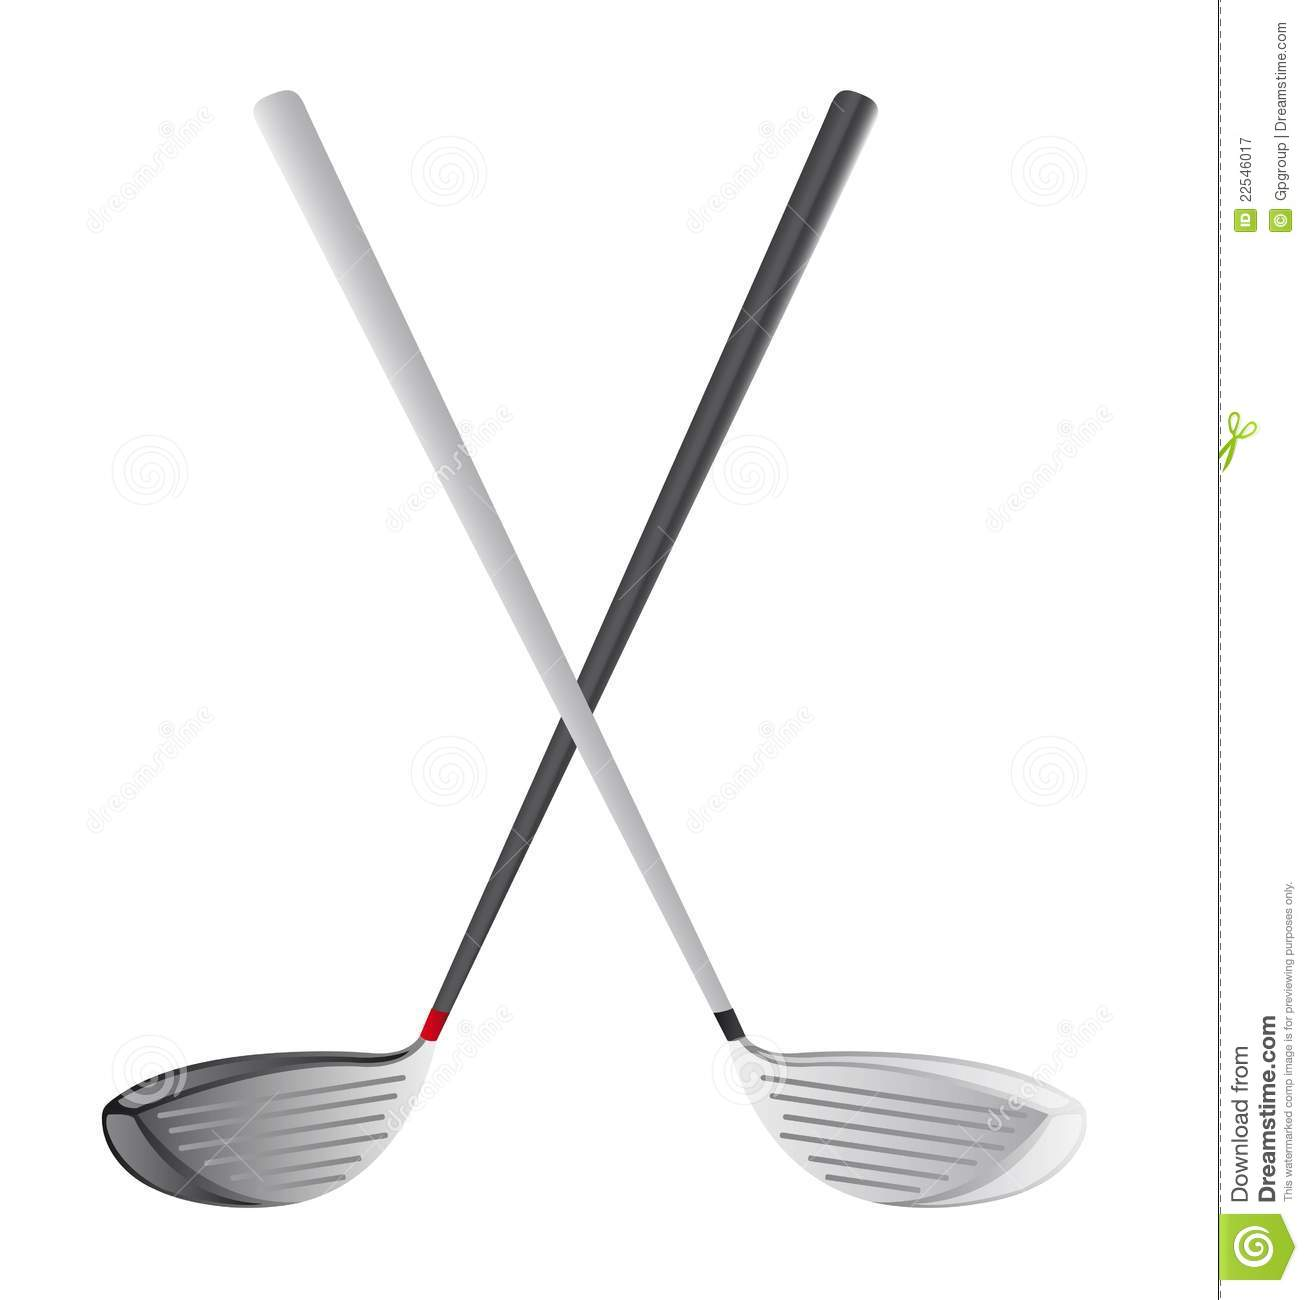 golf clipart  RoyaltyFree Images  Graphics Factory